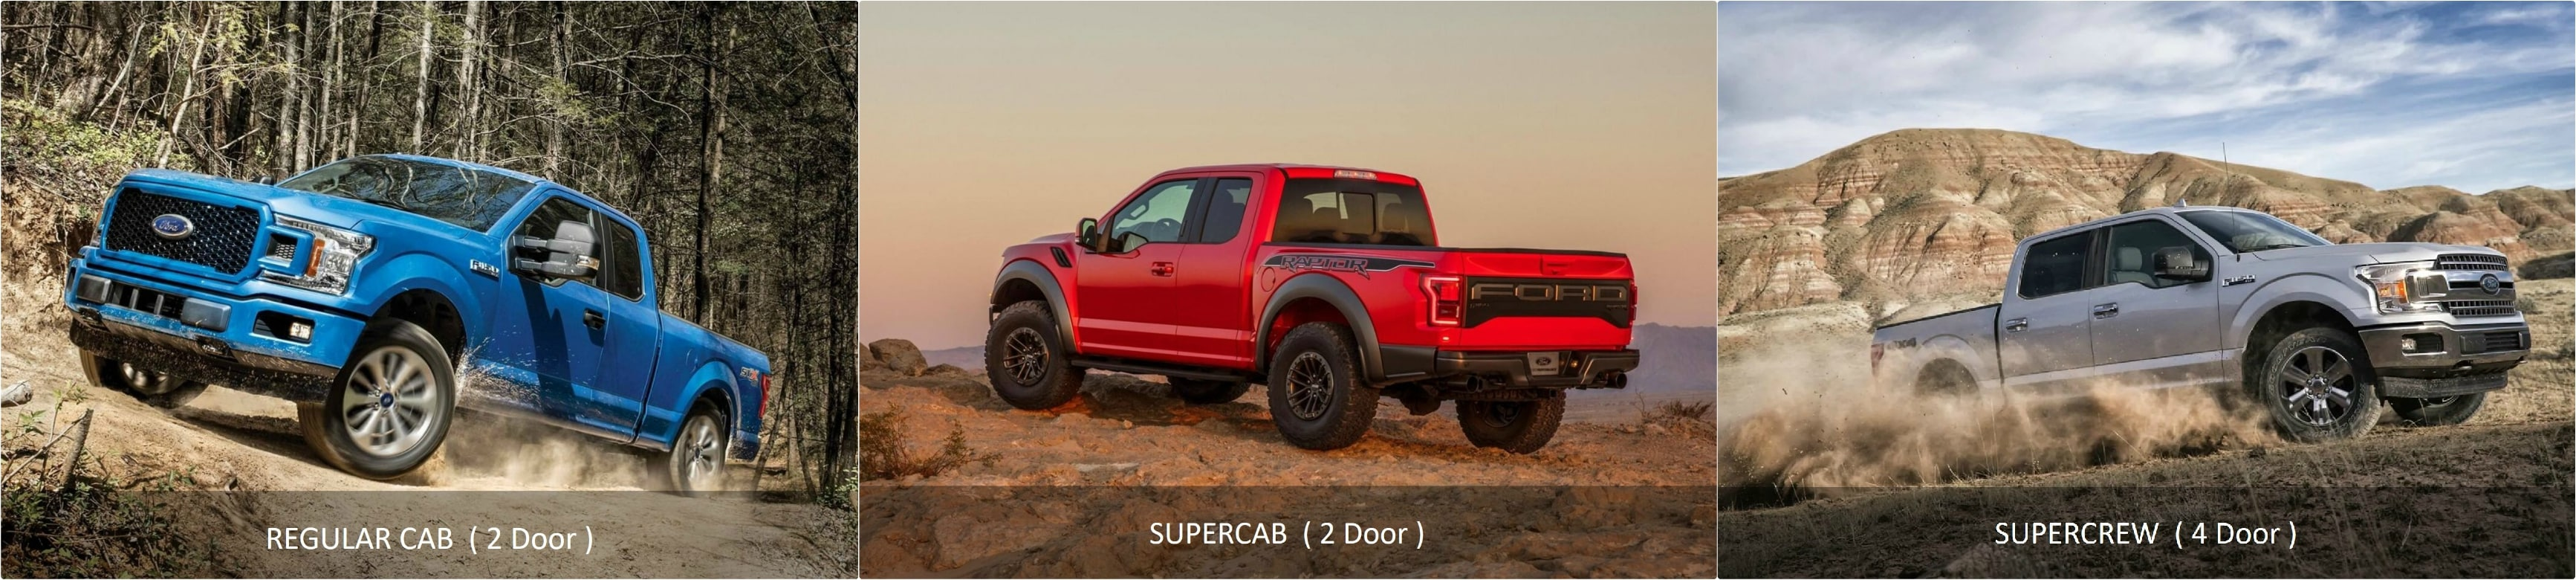 exterior comparison of a Ford F150 Regular Cab vs. SuperCab vs. SuperCrew Trucks